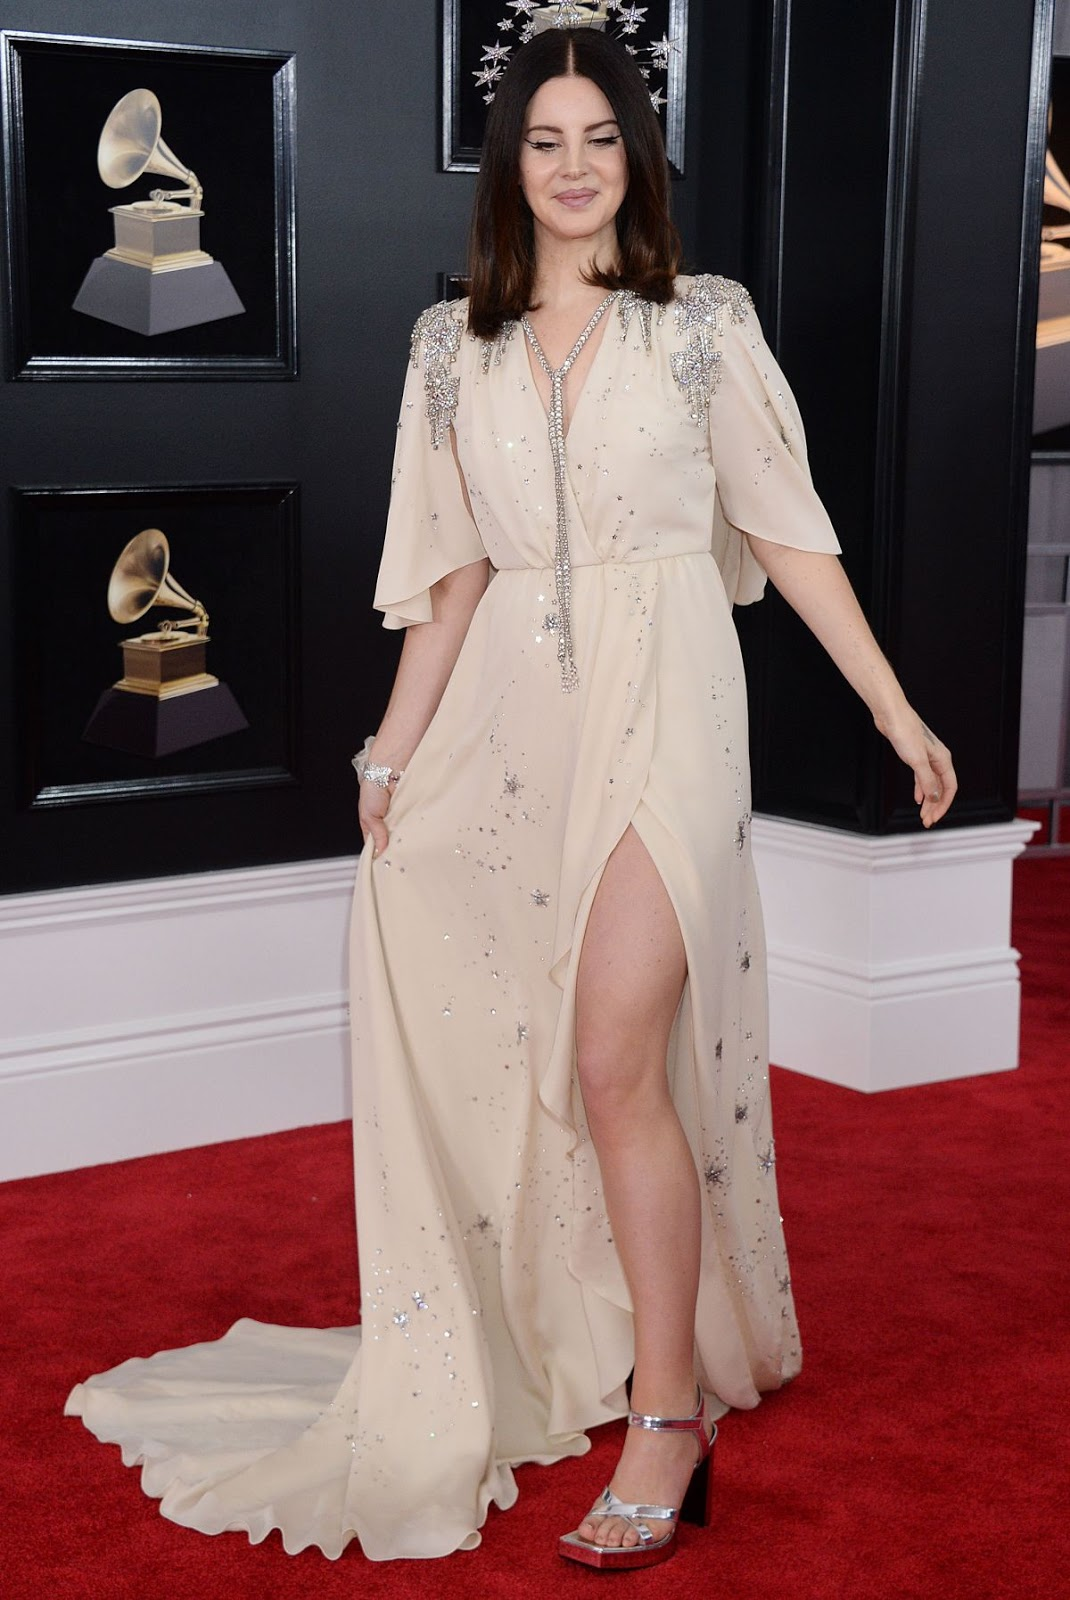 Lana Del Rey oozes off style at the 2018 Grammy Awards